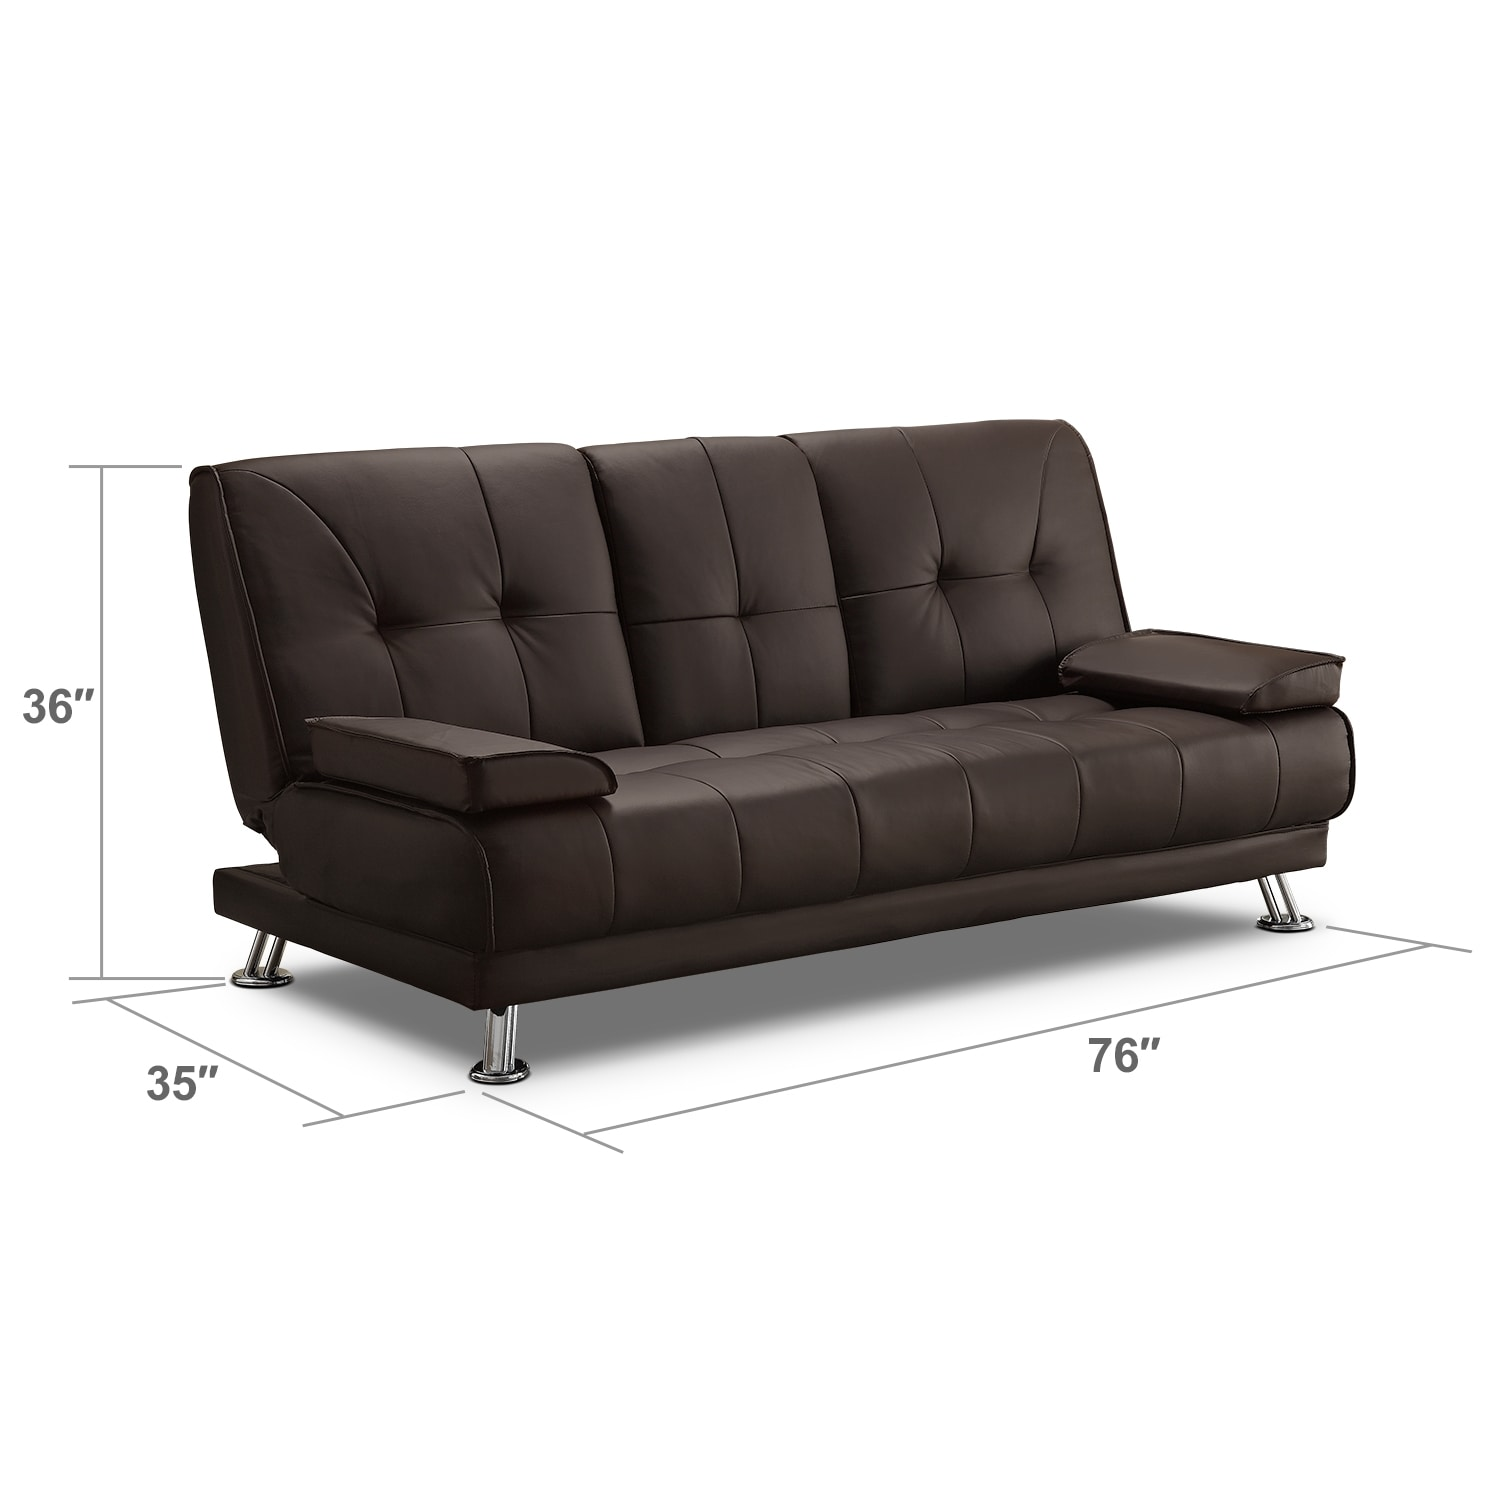 Living Room Furniture - Flash Futon Sofa Bed